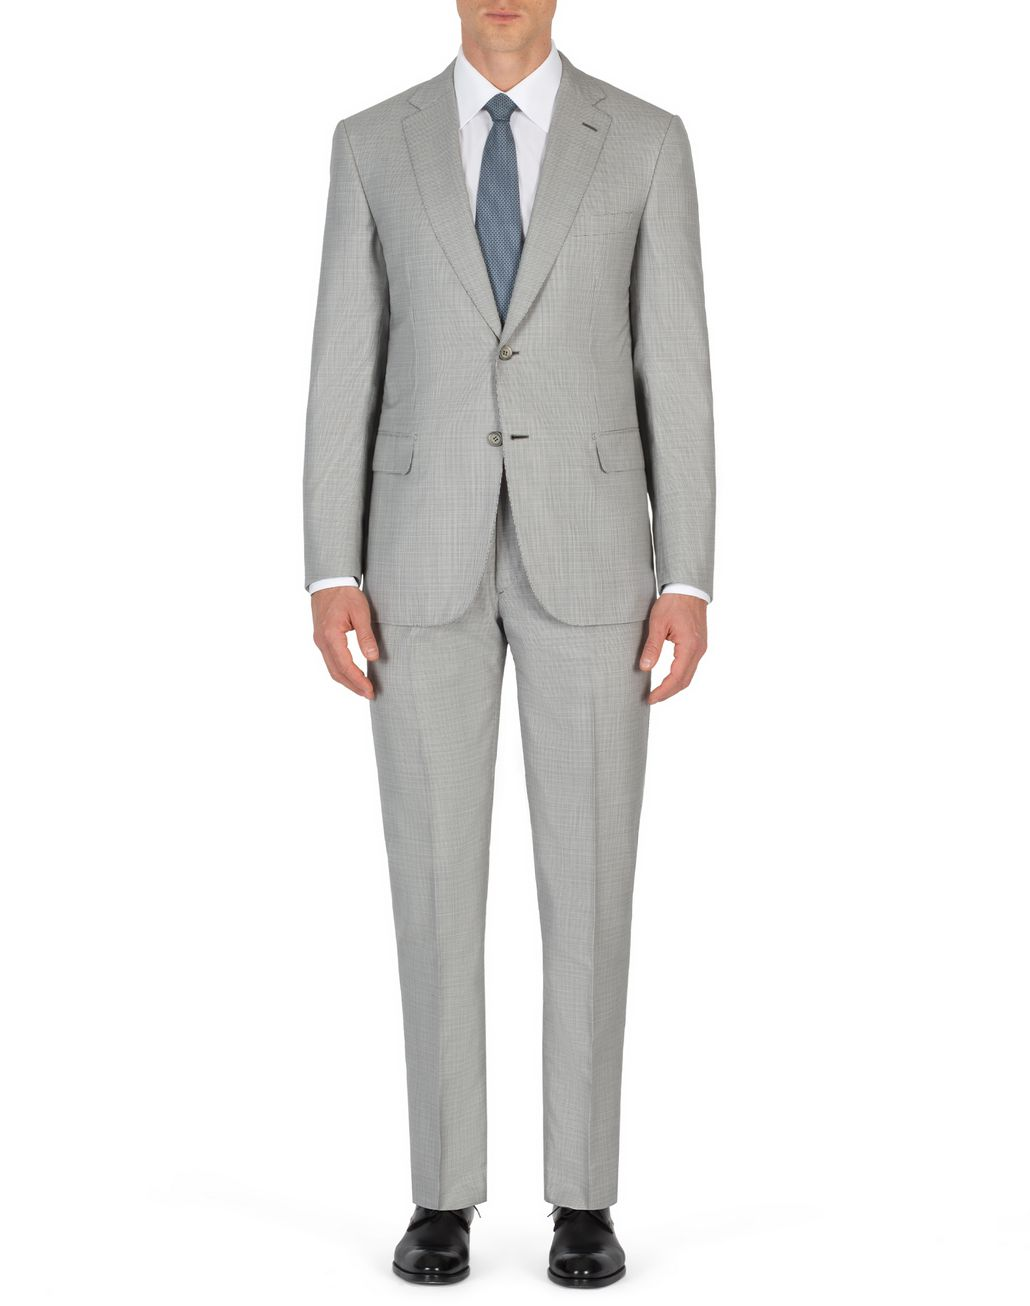 BRIONI White and Gray Micro Houndstooth Brunico Suit  Suits & Jackets Man r